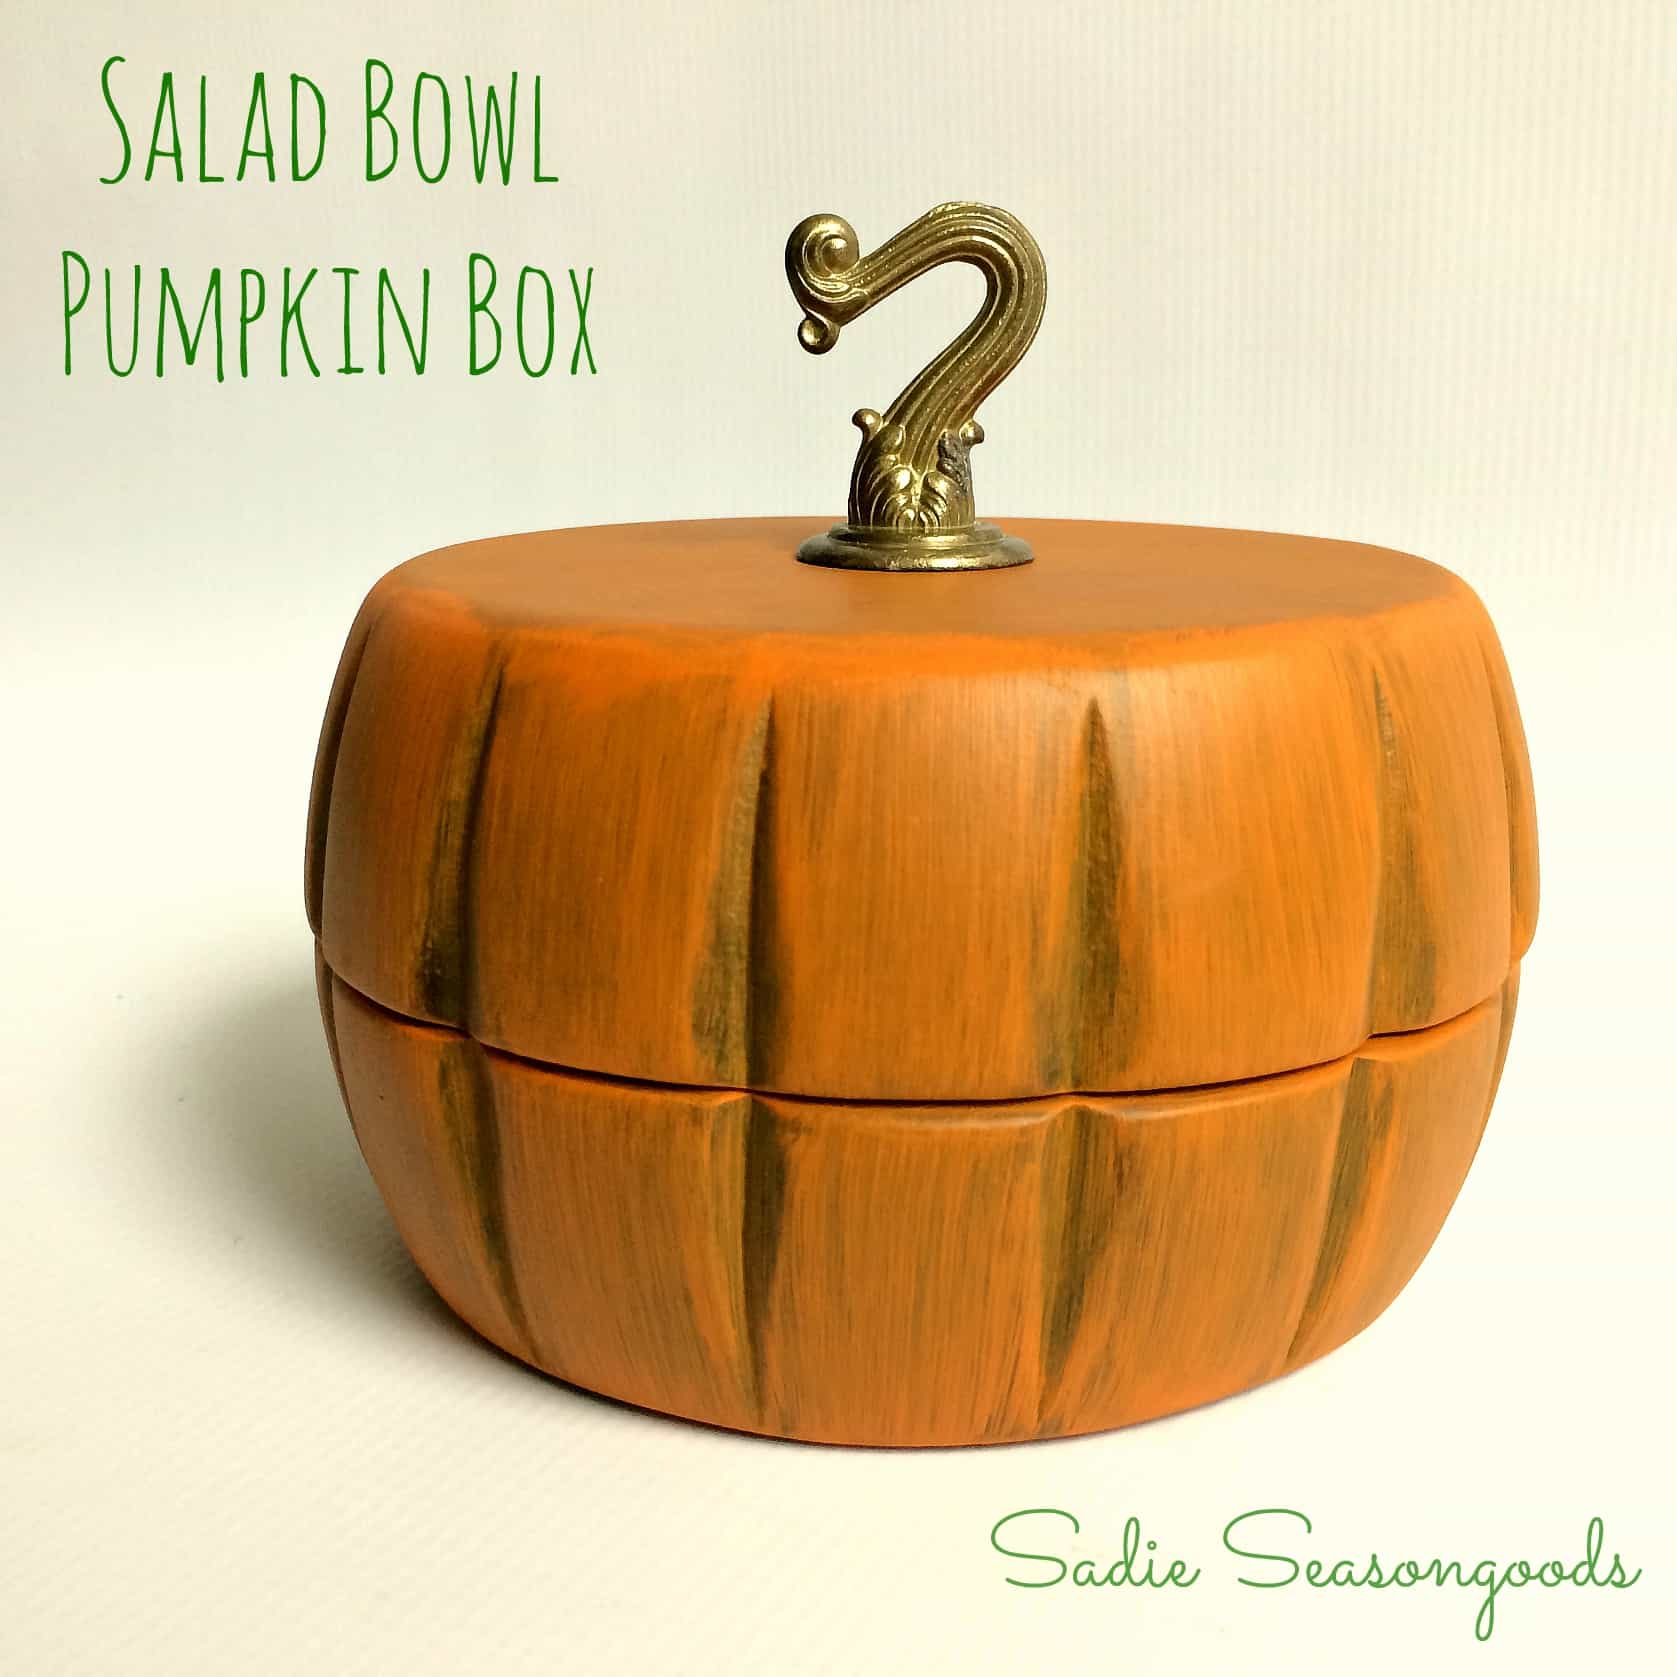 Sadie_Seasongoods_thrifted_wooden_salad_bowls_Pumpkin_trinket_box_for_Fall_Autumn_Decor